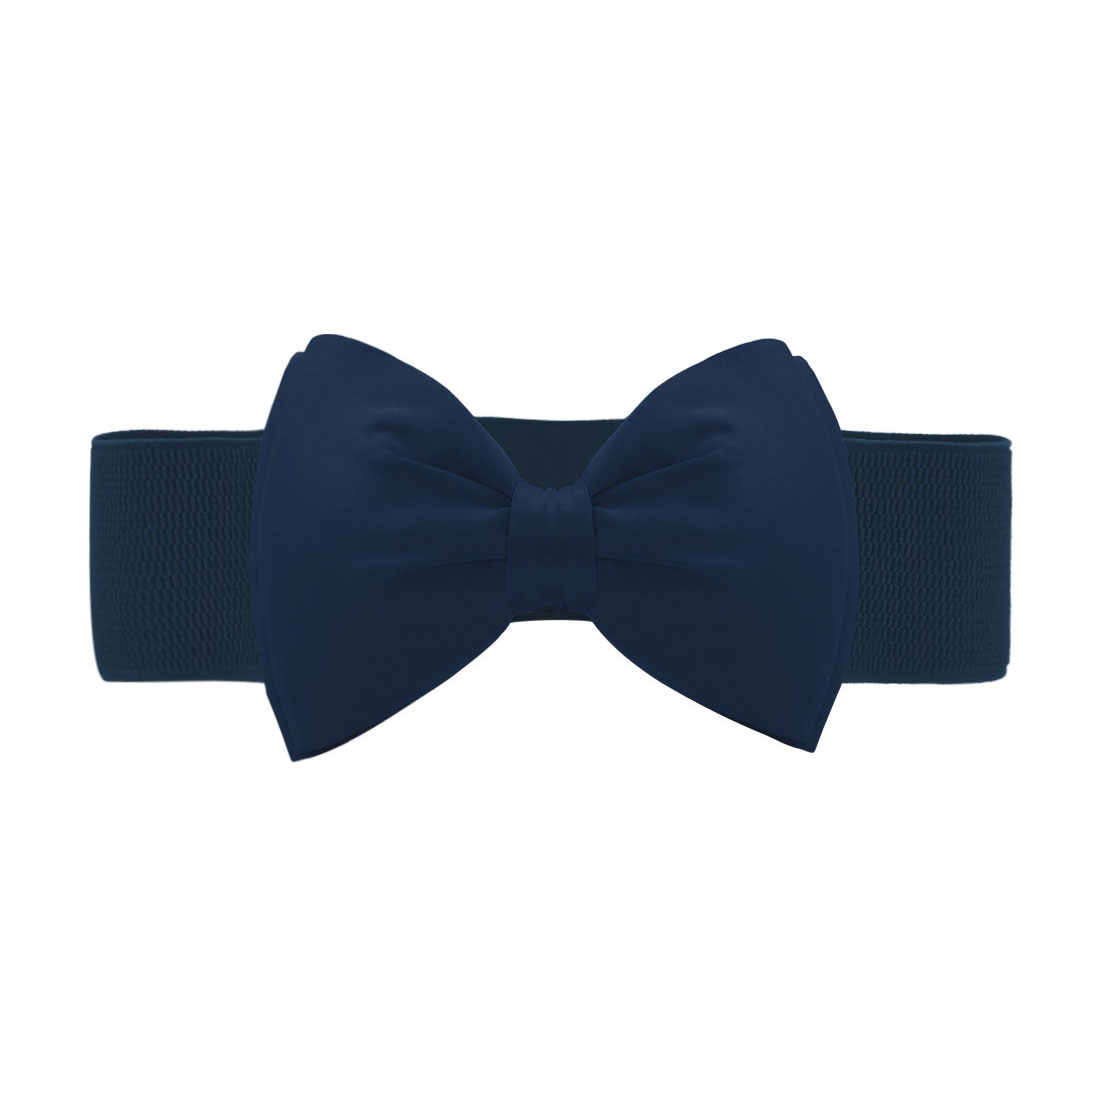 Women Press Studs Closure Bowknot Elastic Waist Belt Blue